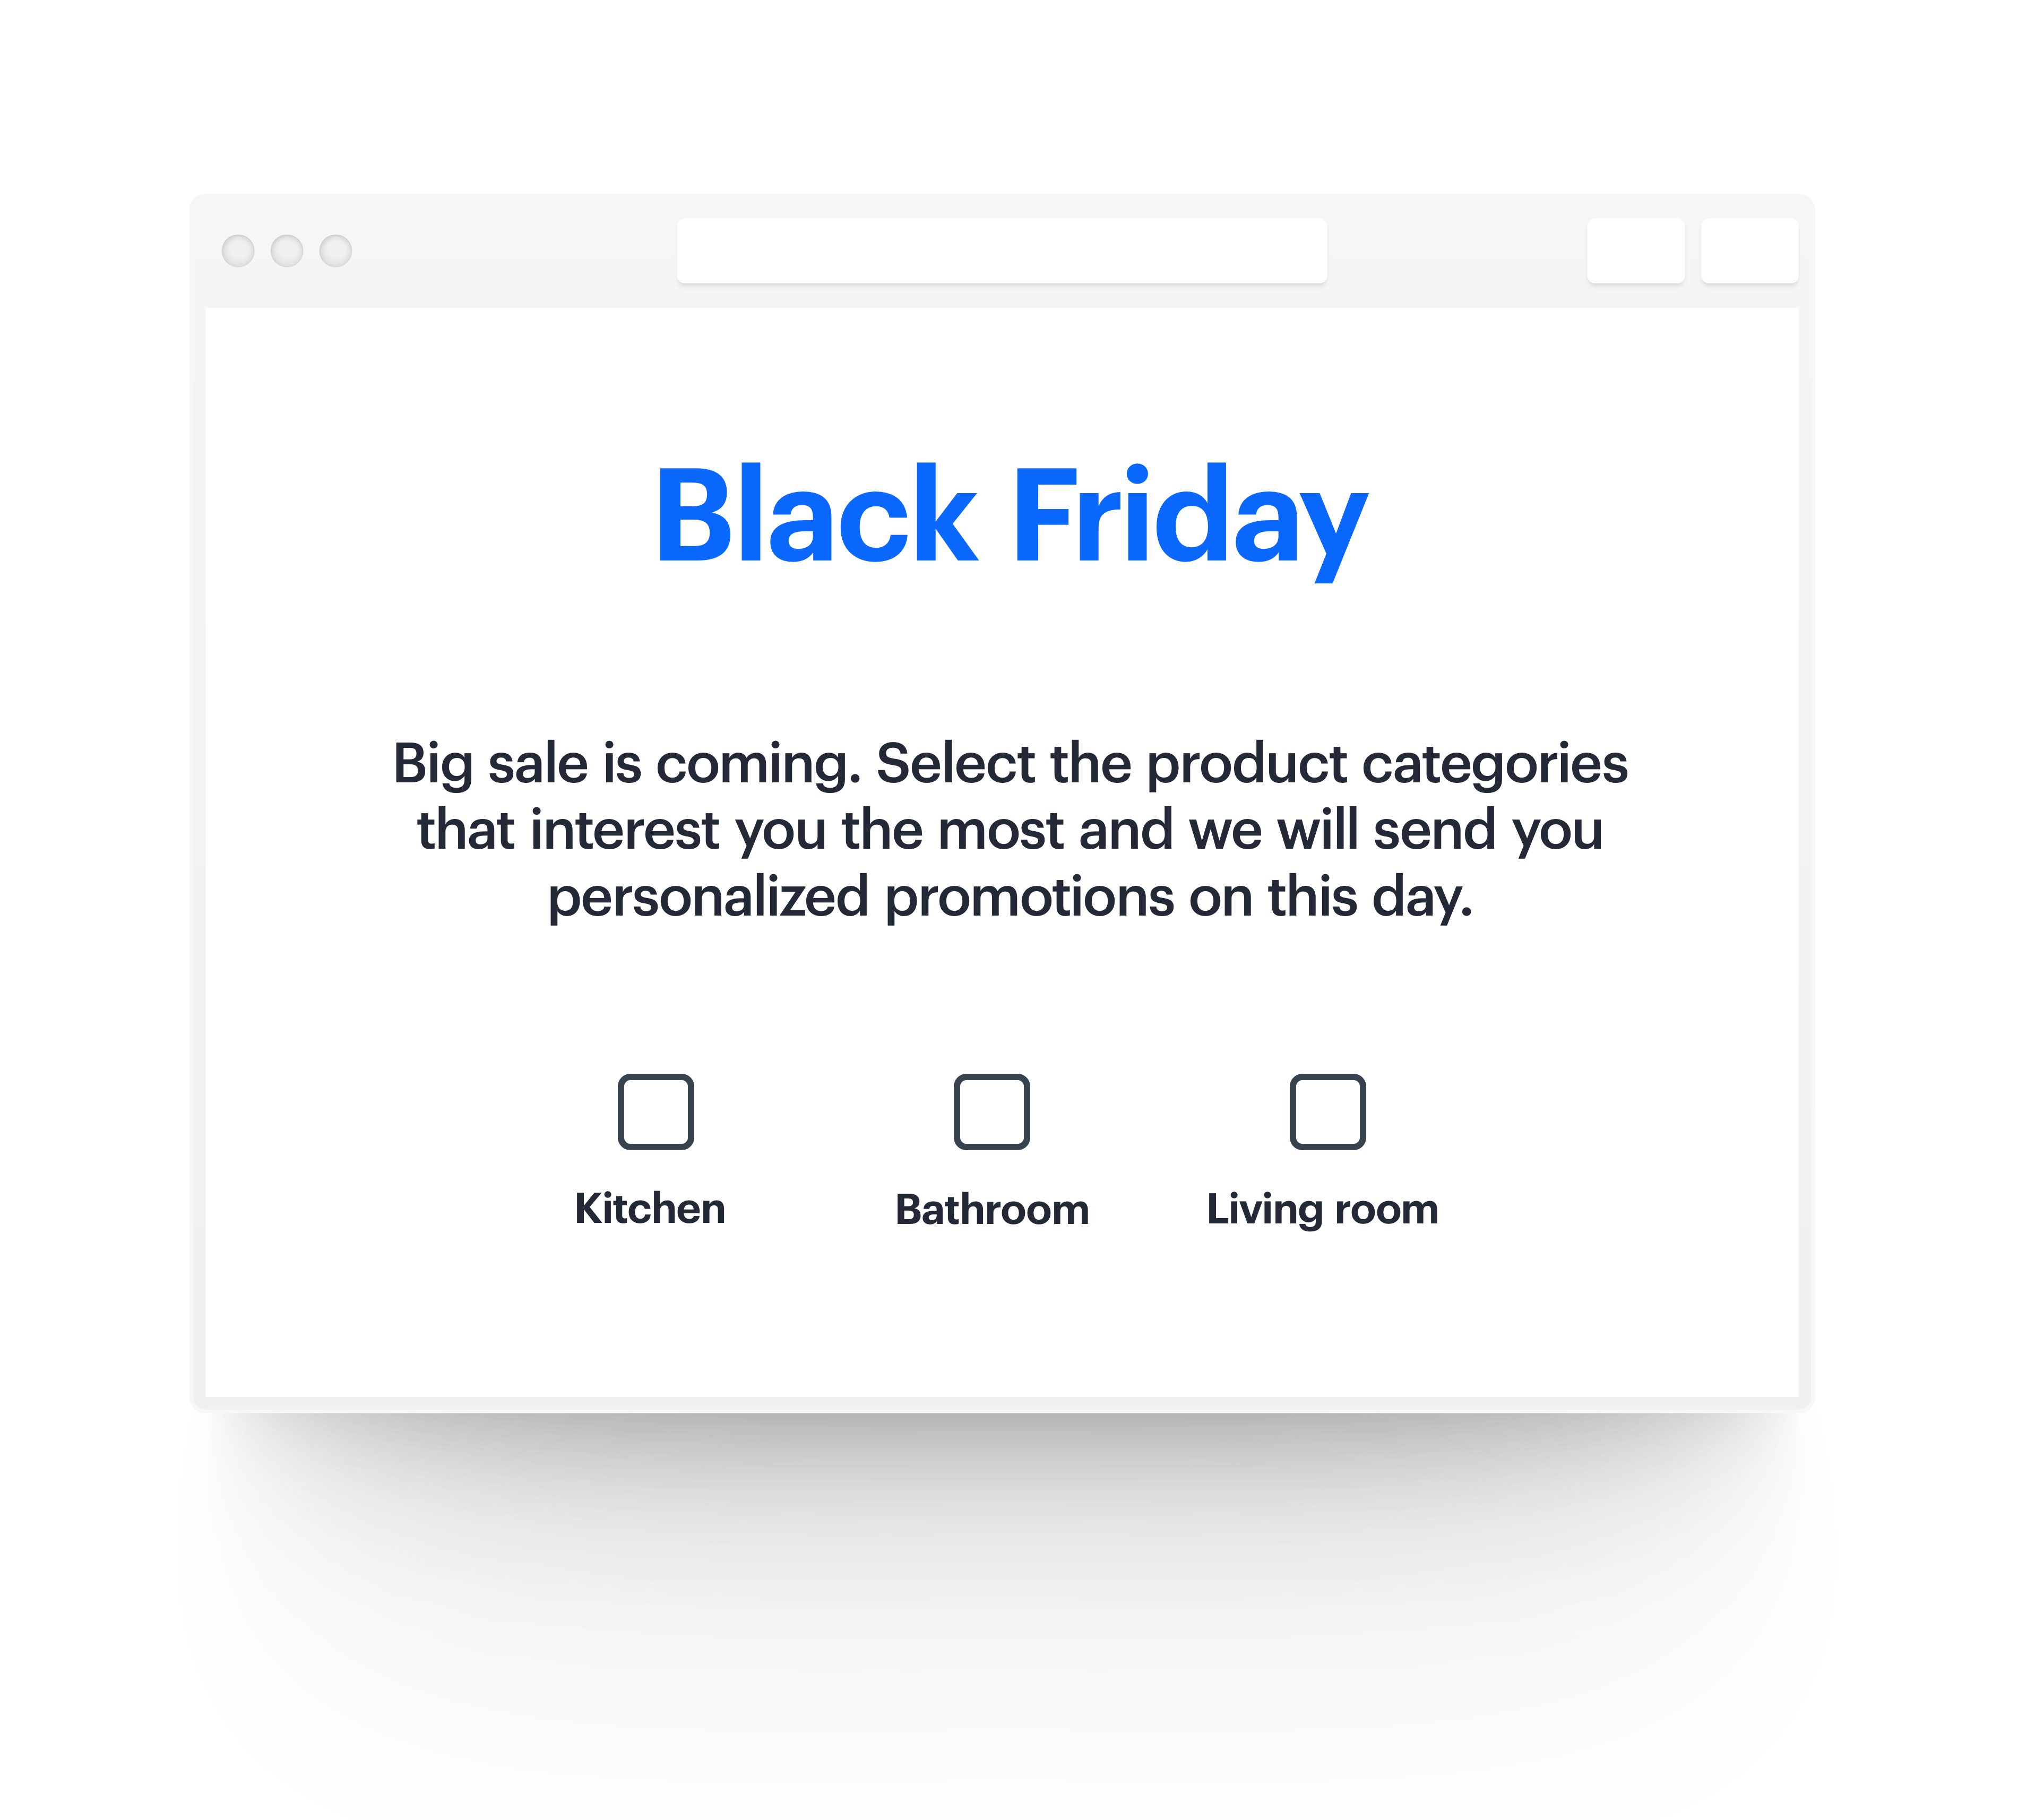 Personalized landing page with a few categories, which customers choose to get discounts during black friday